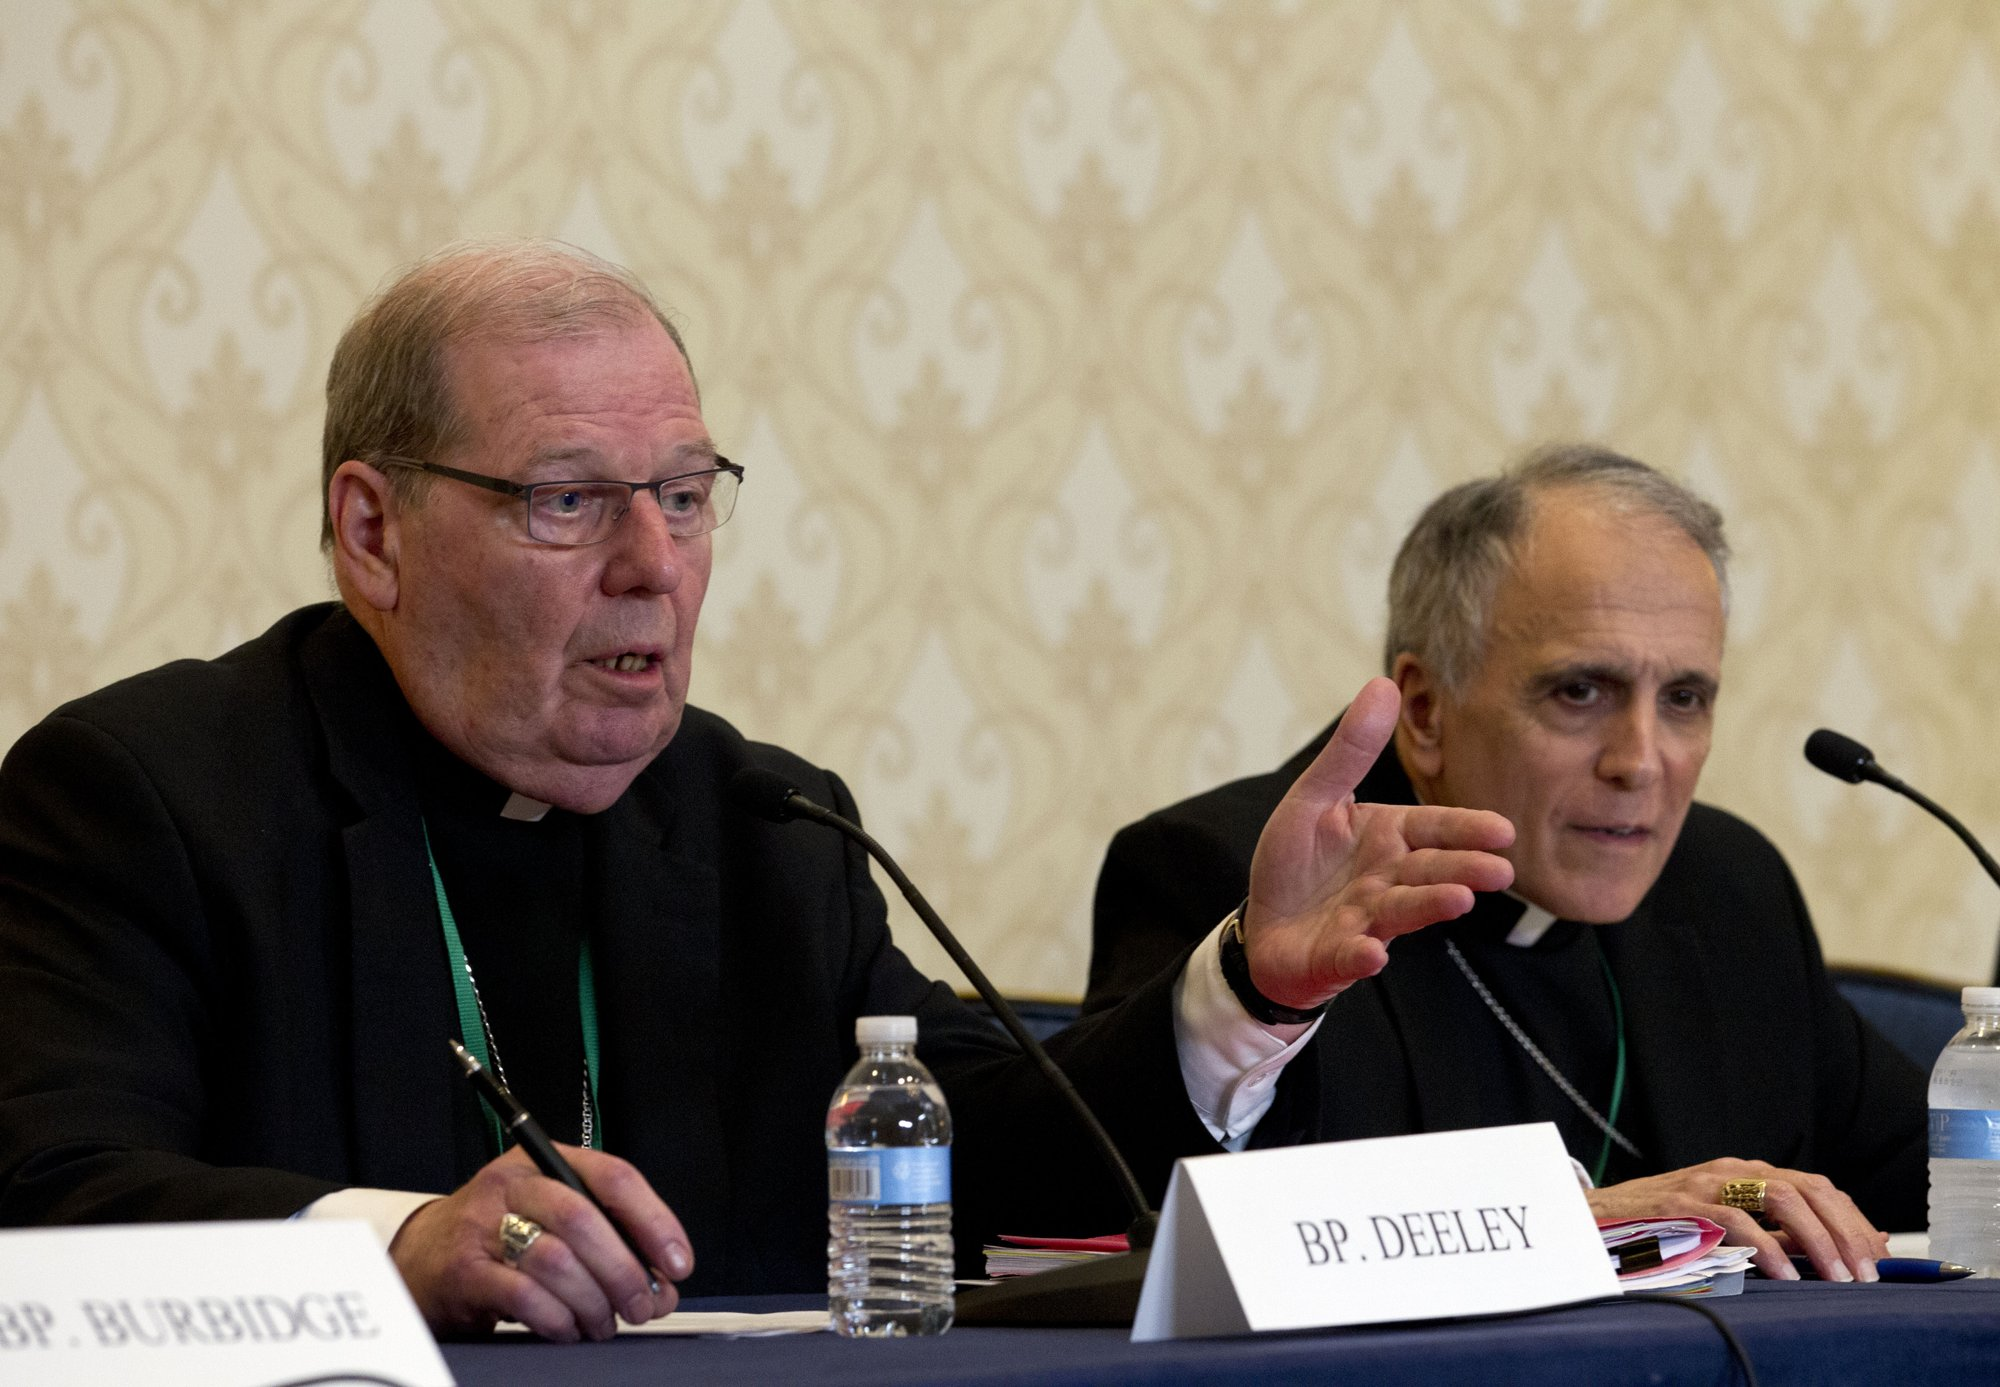 Catholic bishops approve new sex-abuse reporting hotline